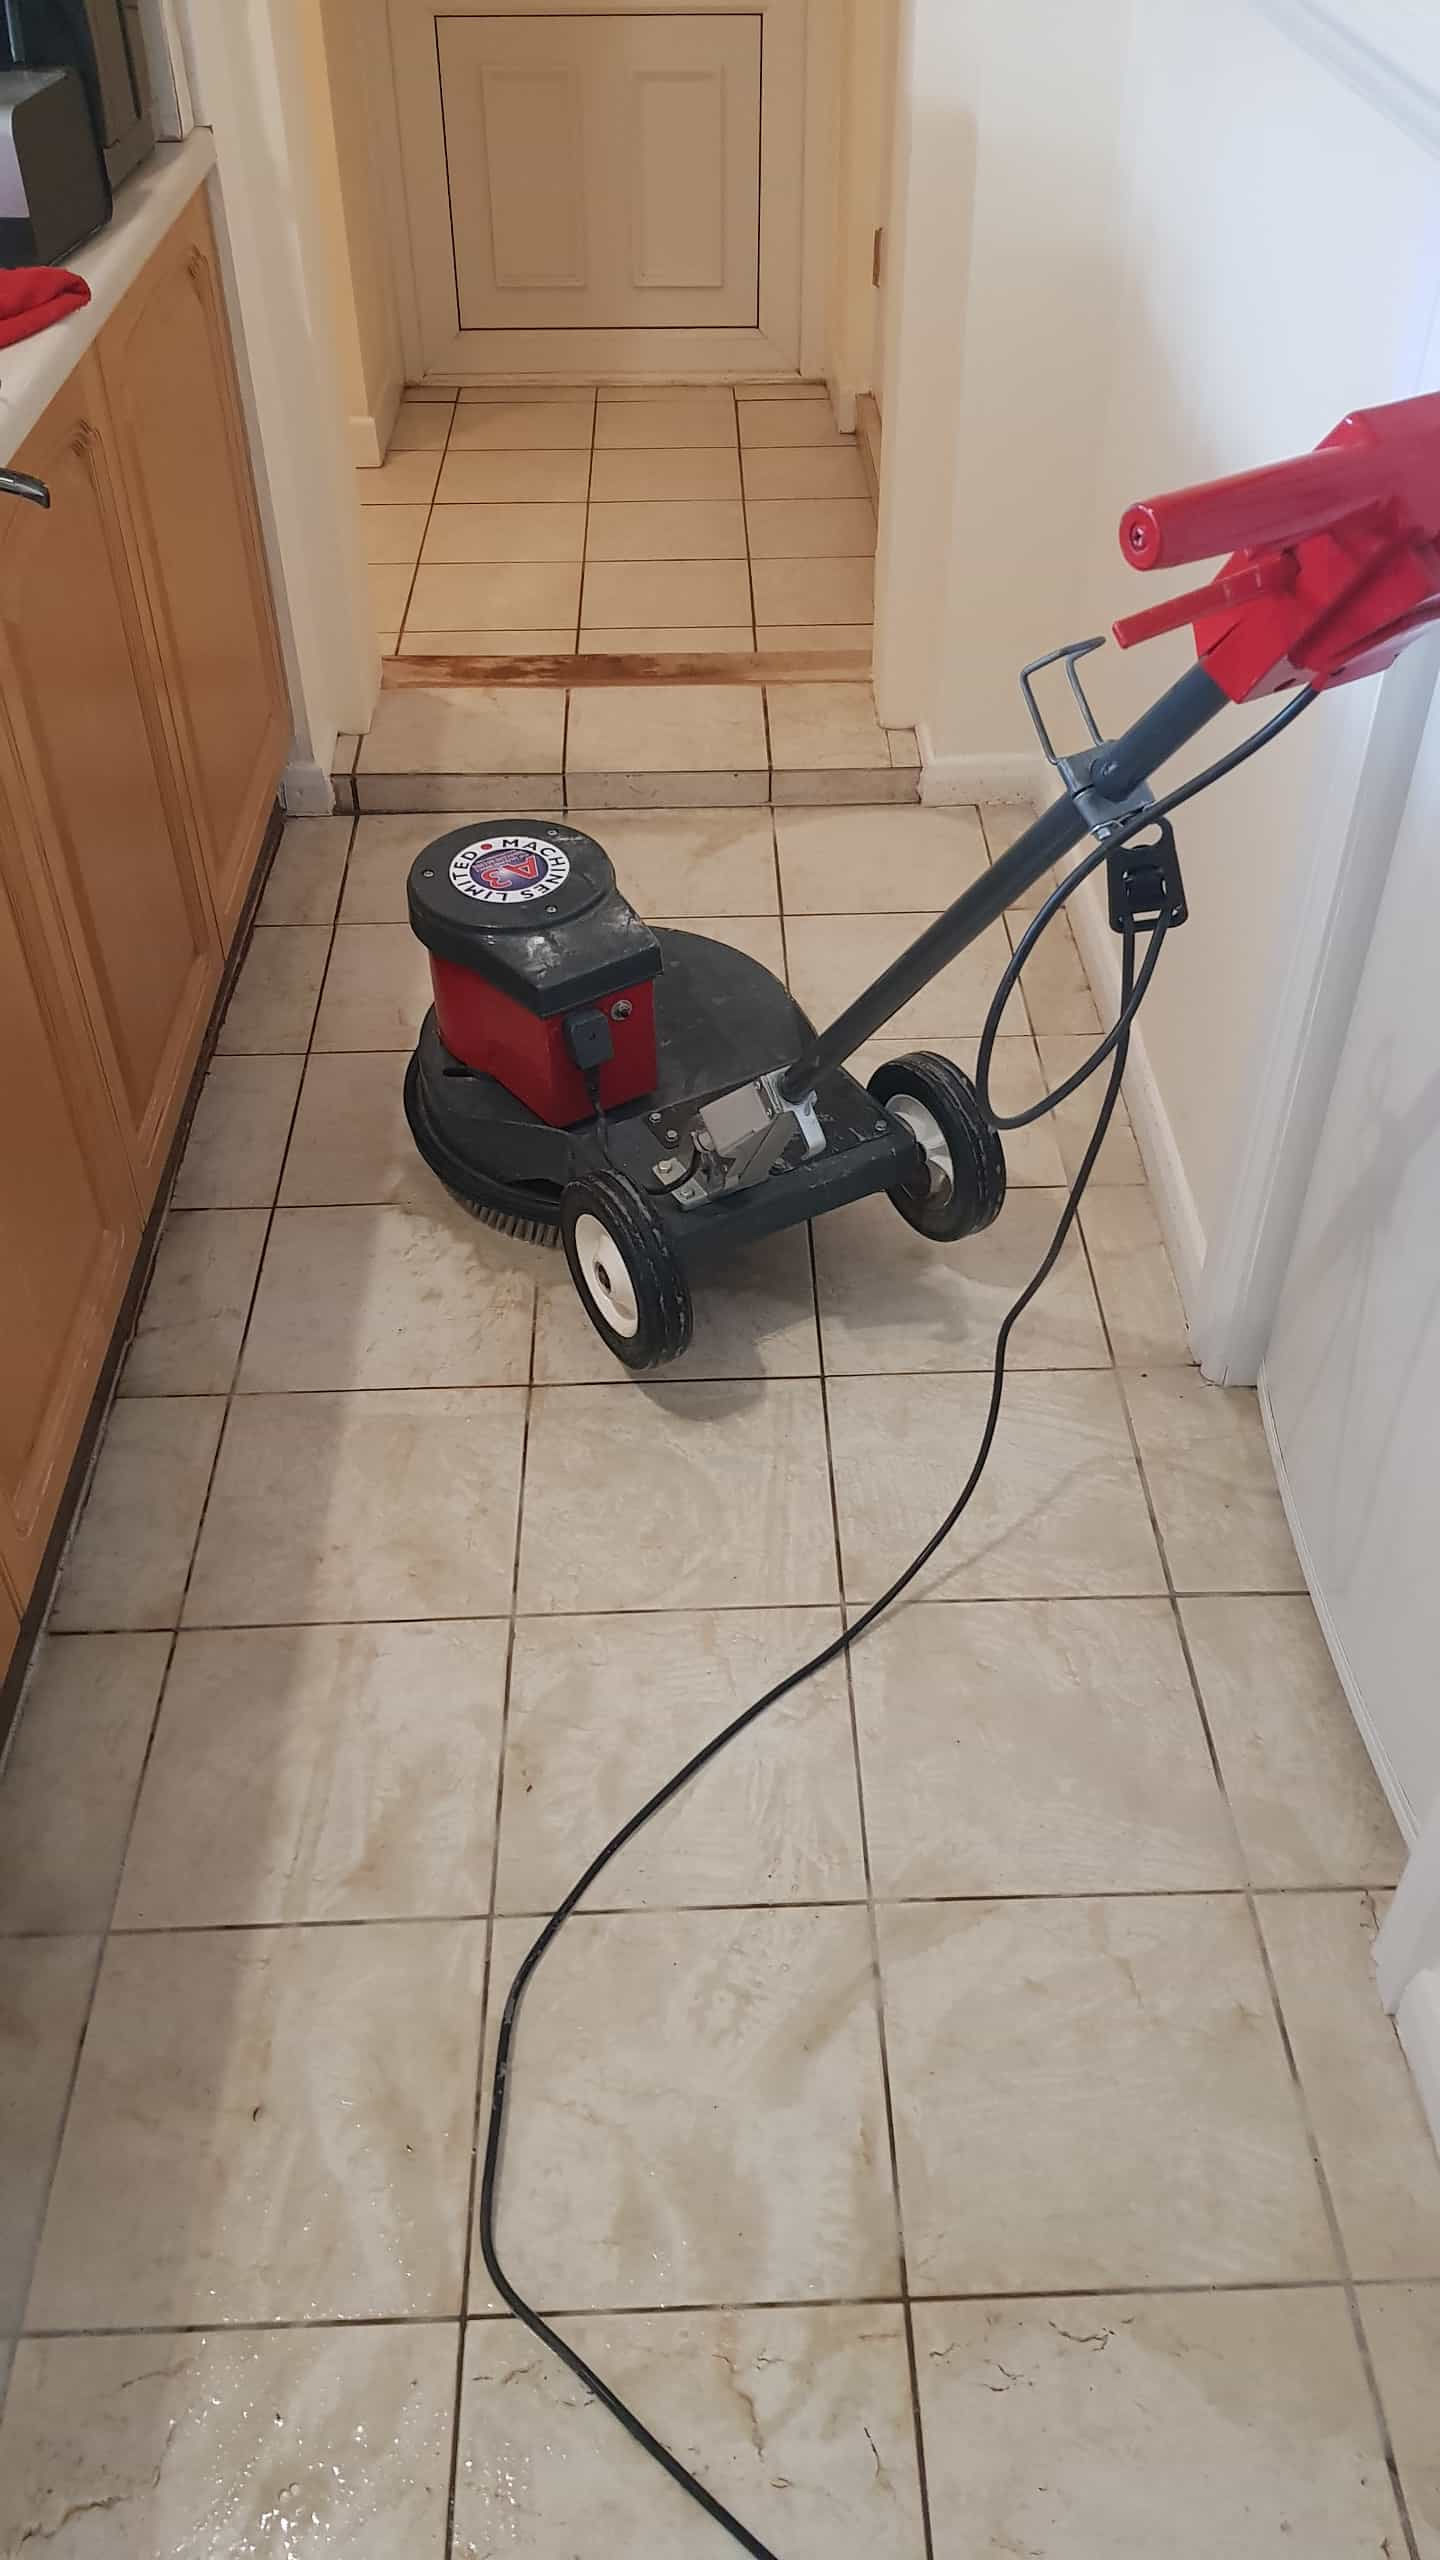 Textured Ceramic Tile During Cleaning